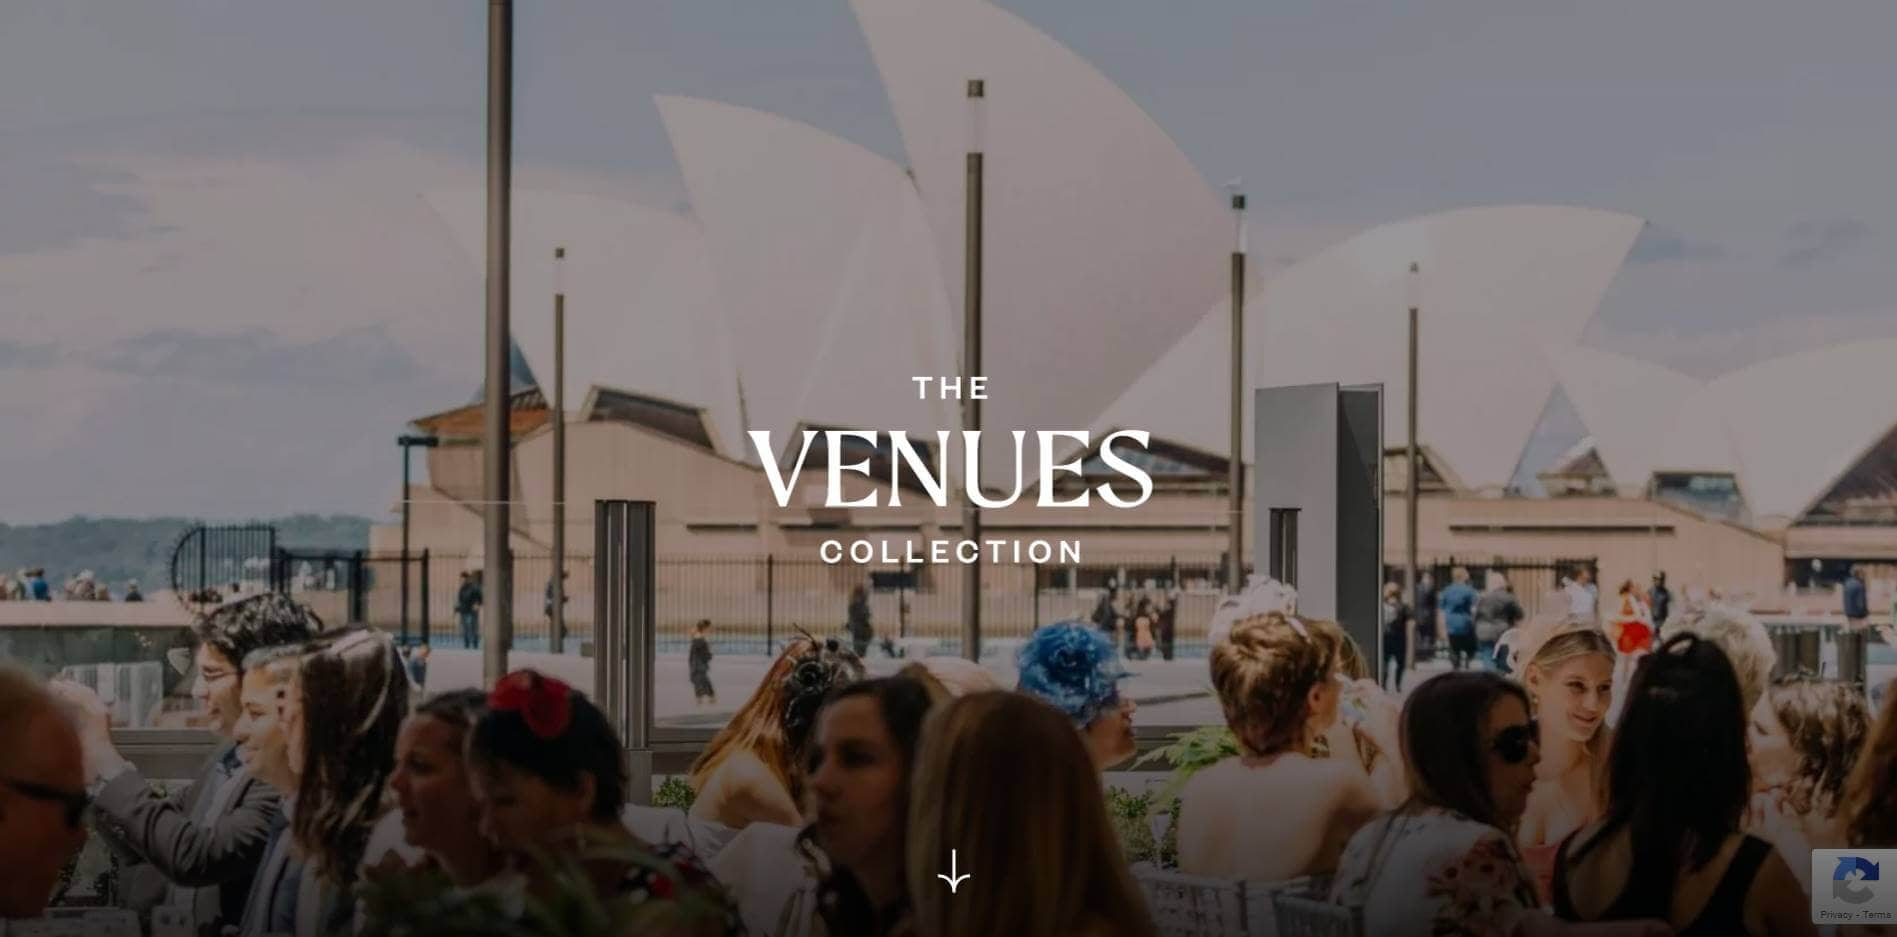 the venues collection